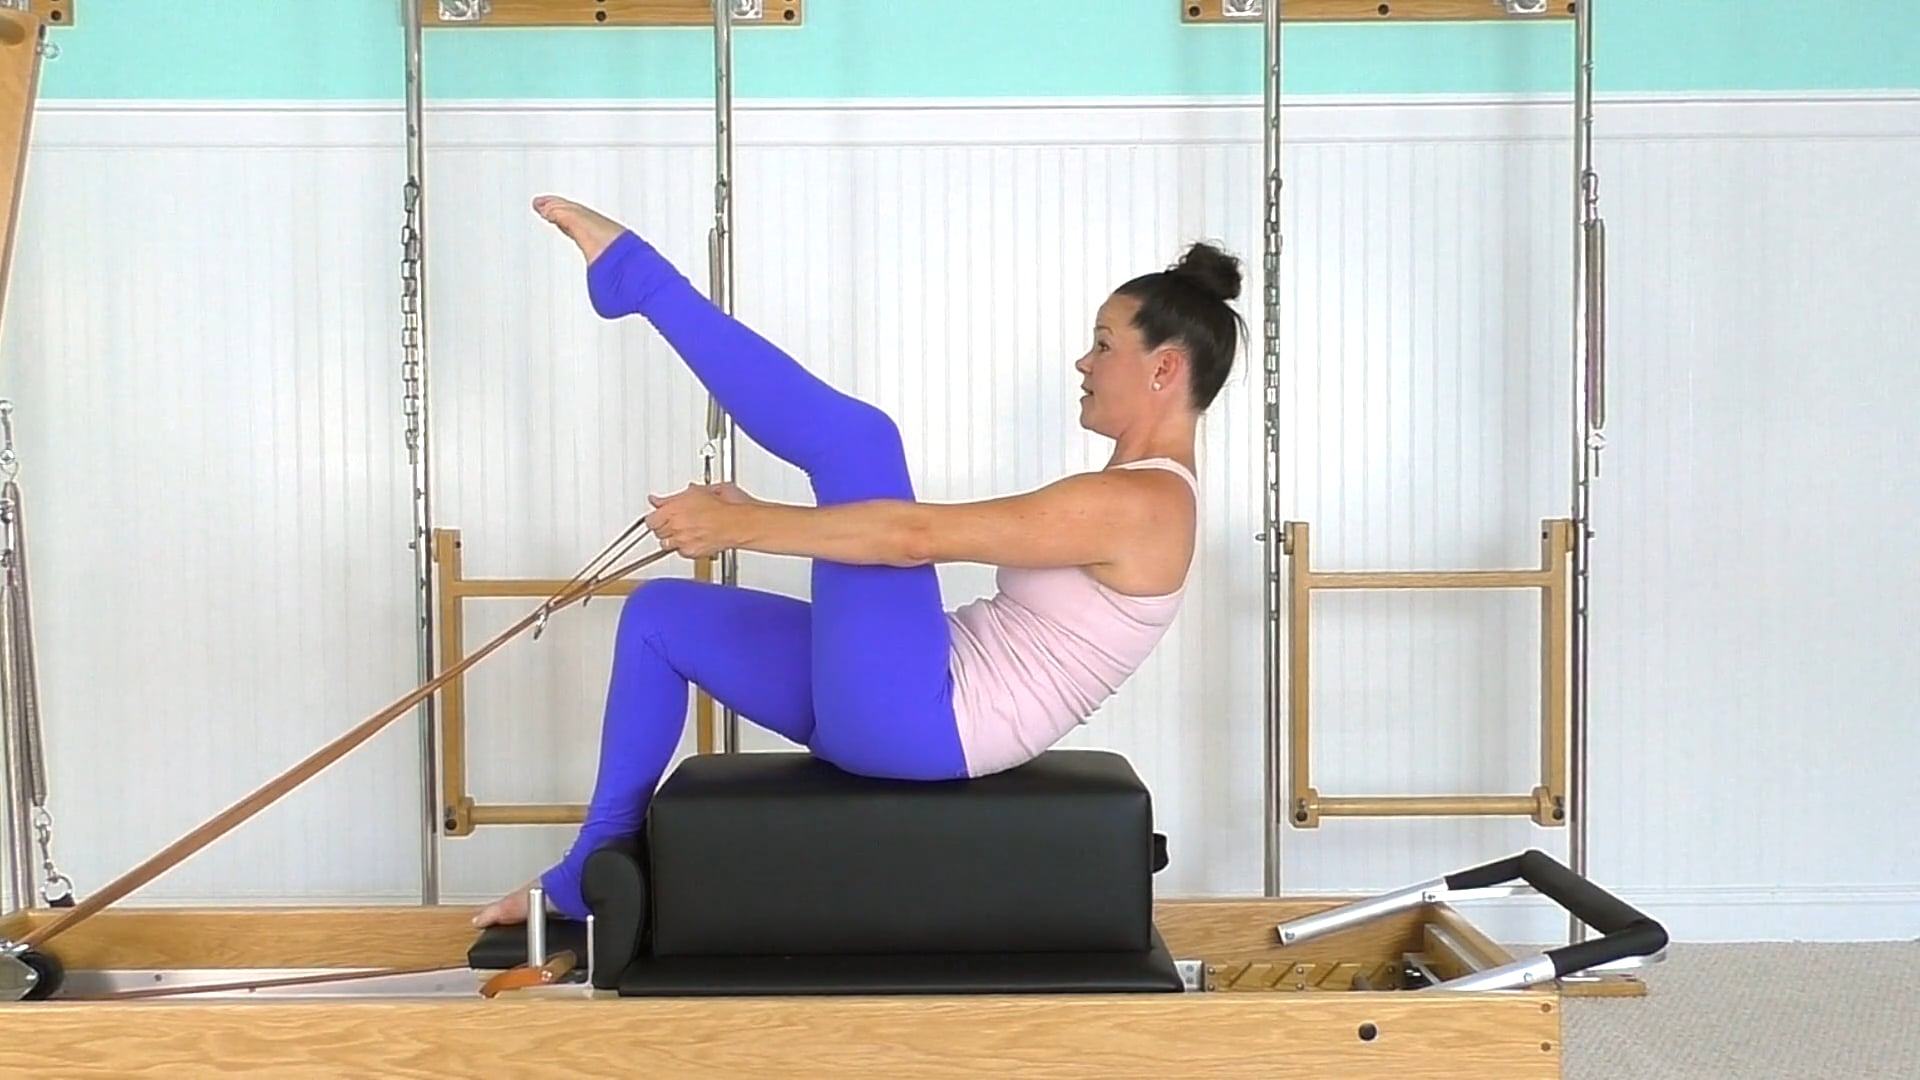 Flowing Reformer For Balance and Control (33 mins)